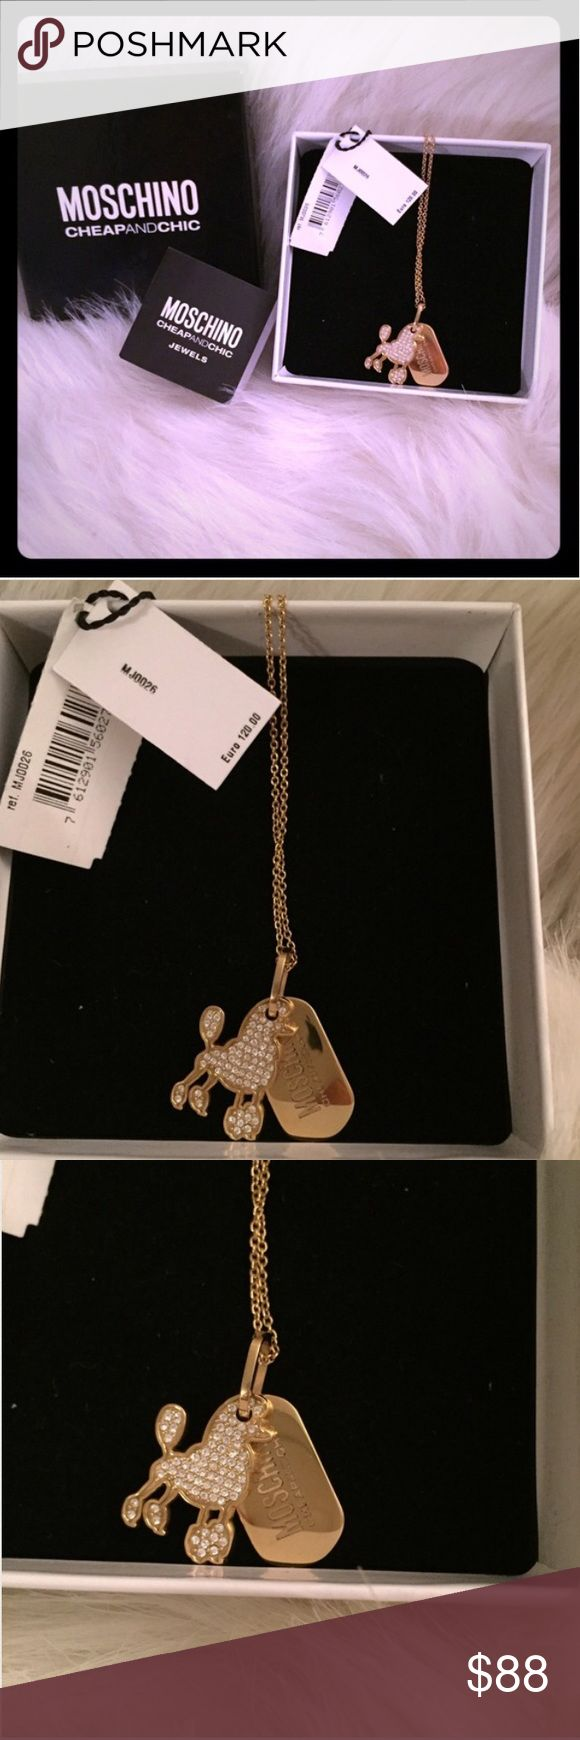 Moschino NWT Dog Love Tag Gold Necklace! Beautiful new w tags! Moschino 18 carat Gold and Swarovski Crystal Dog and Moschino Logo Dog Tag necklace! Comes w accompanying gift box, necklace, price tag, and jewelry pouch! On sale now! Authentic! Purchased internationally, comes w Euro price tag on necklace. Moschino Jewelry Necklaces